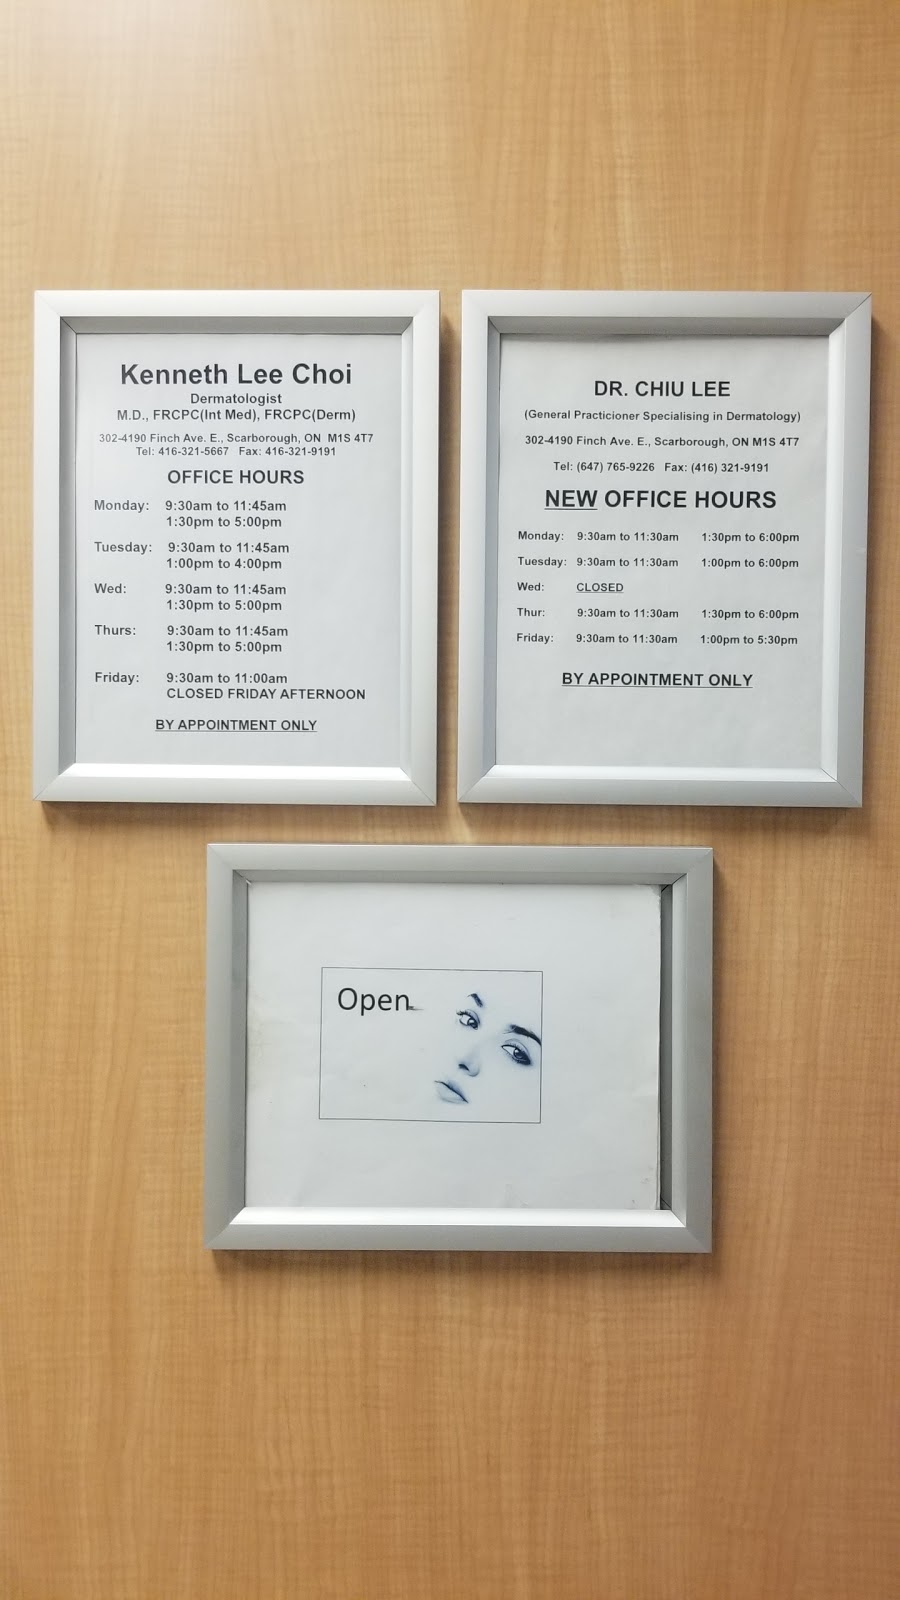 DR. CHIU LEE | doctor | 4190 Finch Ave E #302, Scarborough, ON M1S 4T7, Canada | 6477659226 OR +1 647-765-9226